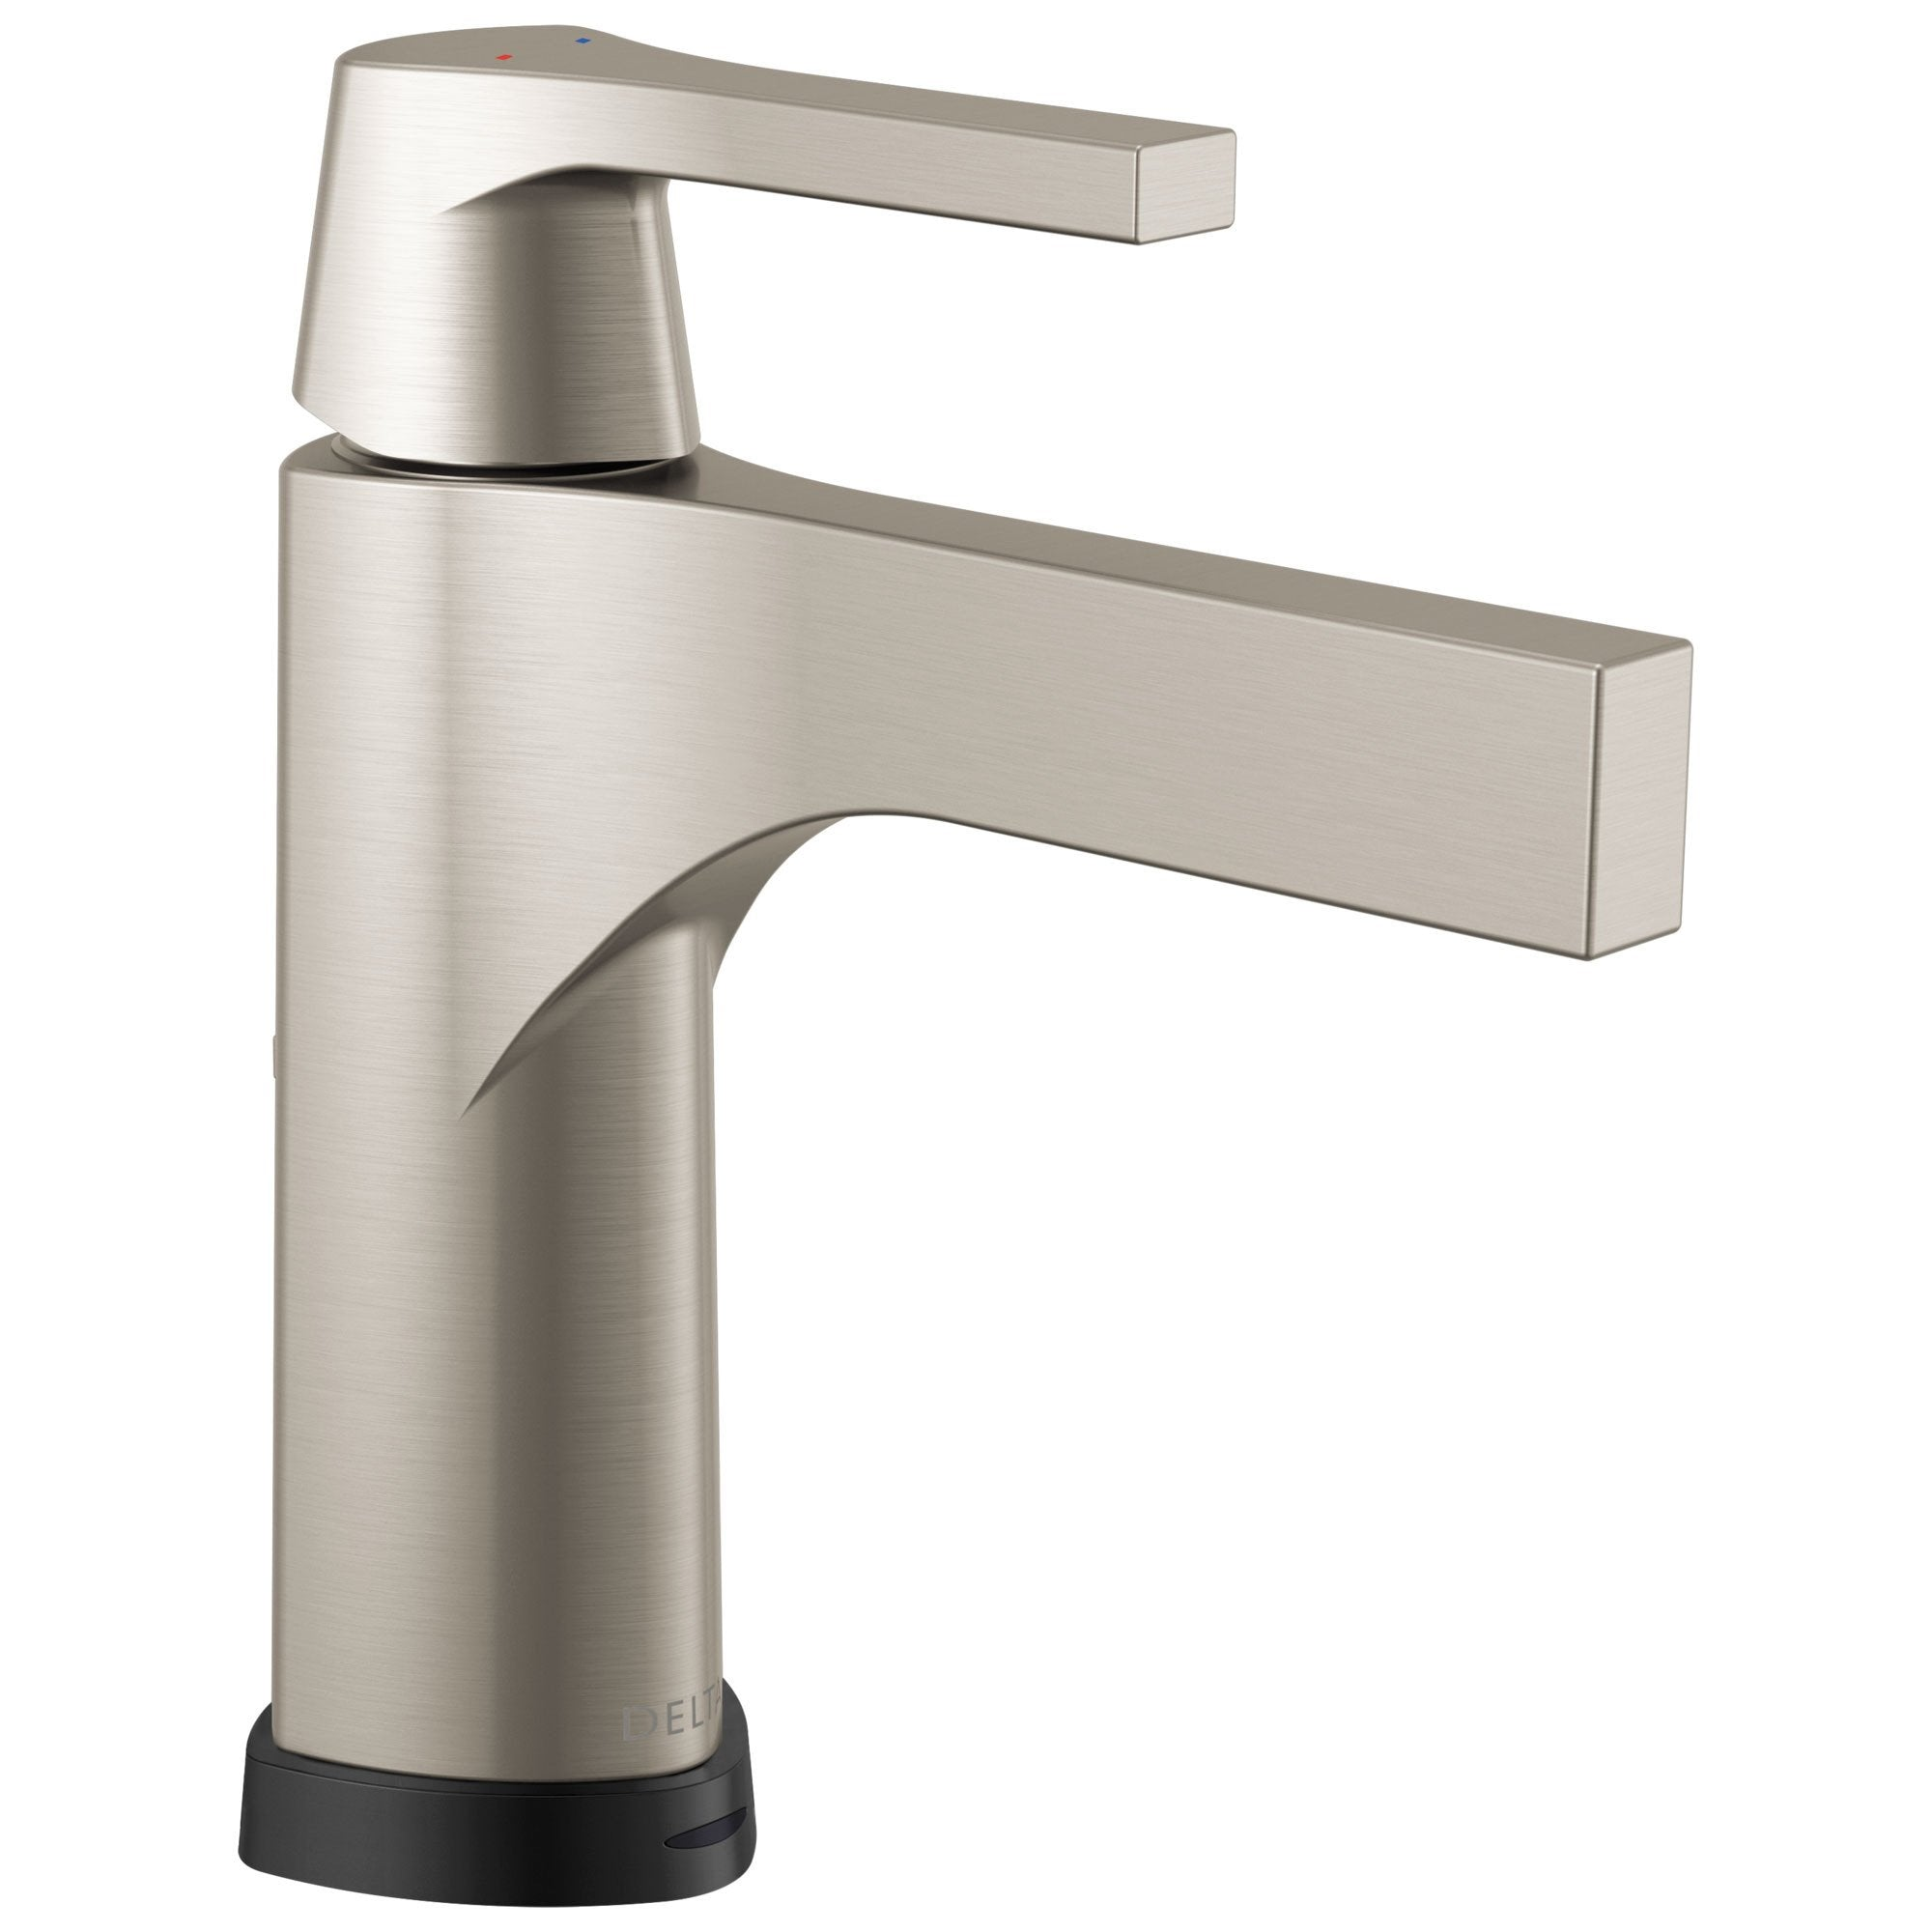 Delta Zura Collection Stainless Steel Finish Modern Single Handle Electronic Centerset Lavatory Bathroom Sink Faucet with Touch2Oxt Technology 743898